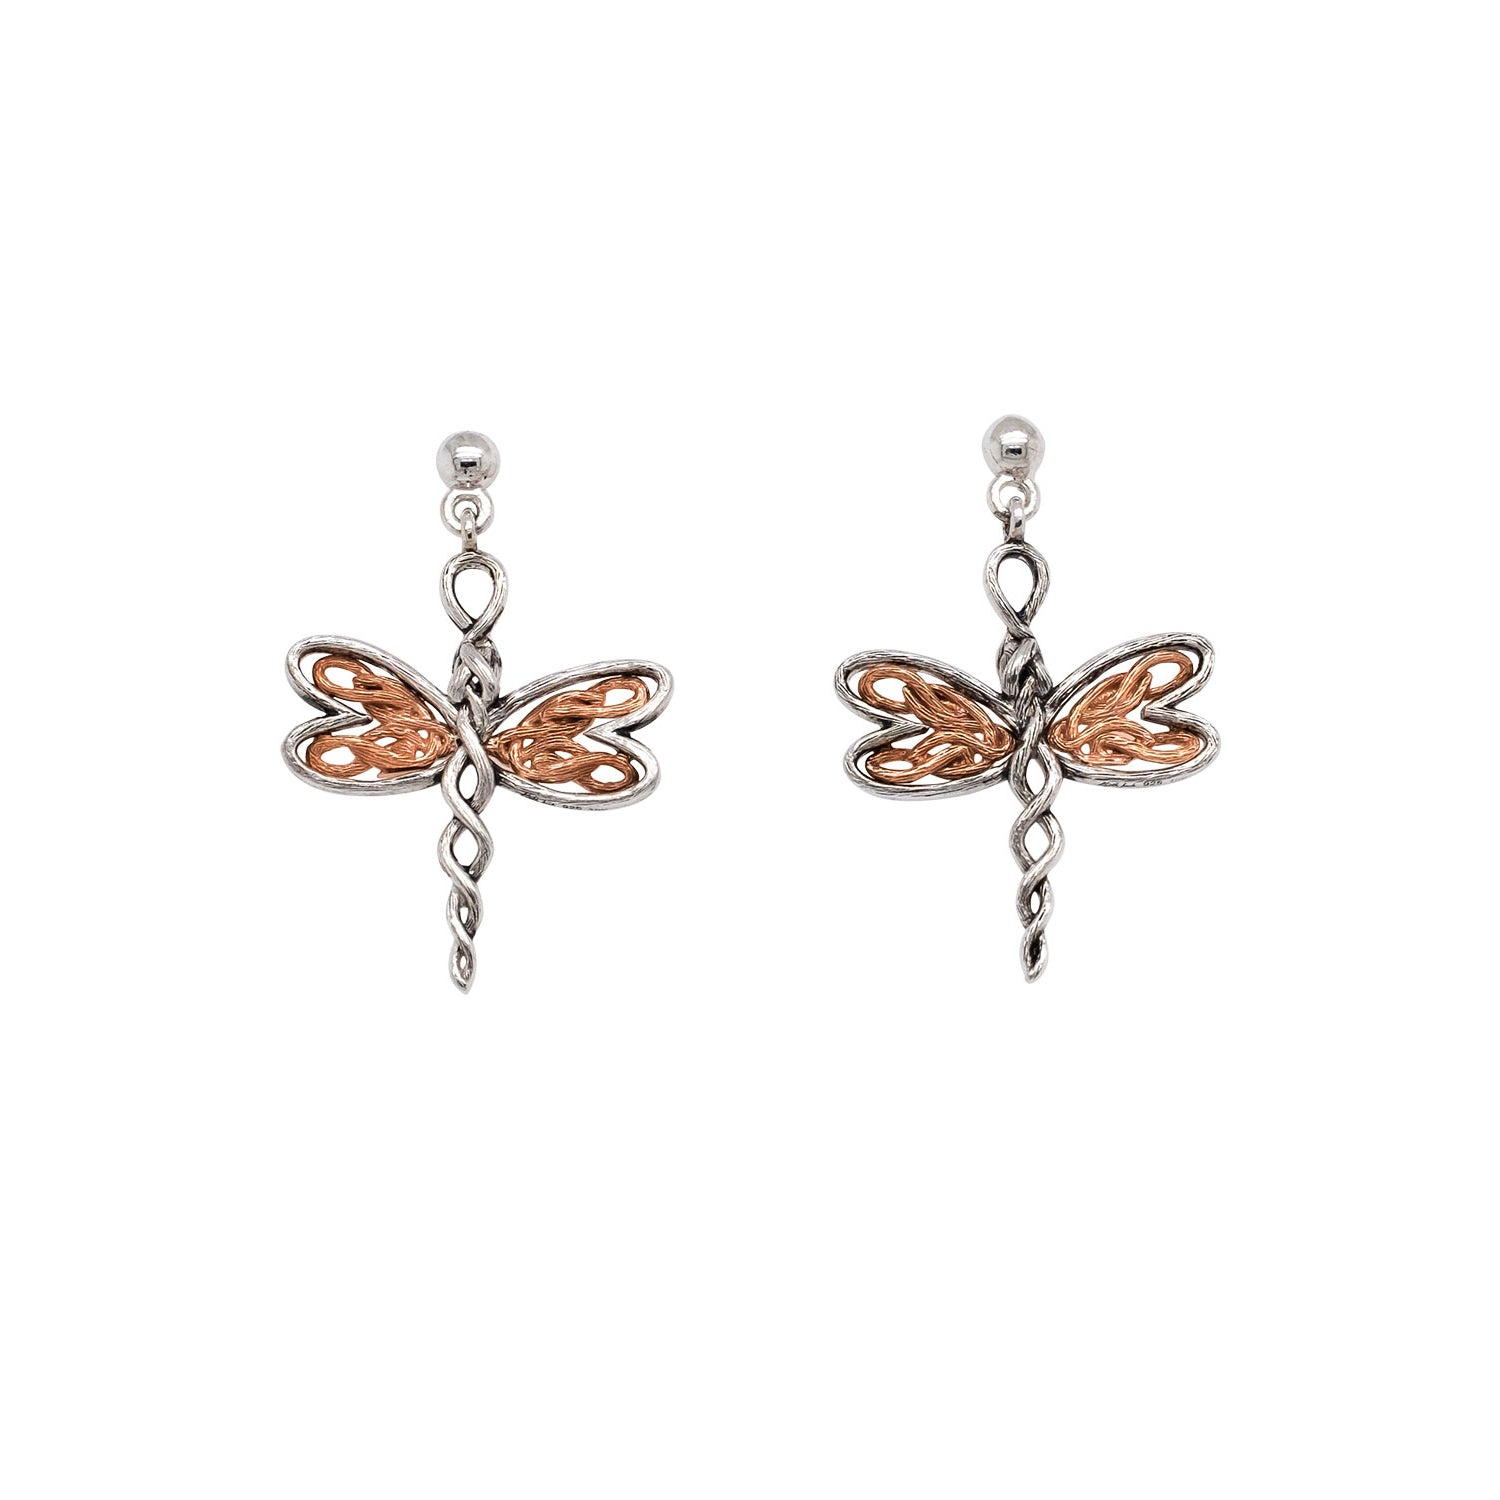 Earrings Rhodium 10k Rose Dragonfly Post Earrings from welch and company jewelers near syracuse ny